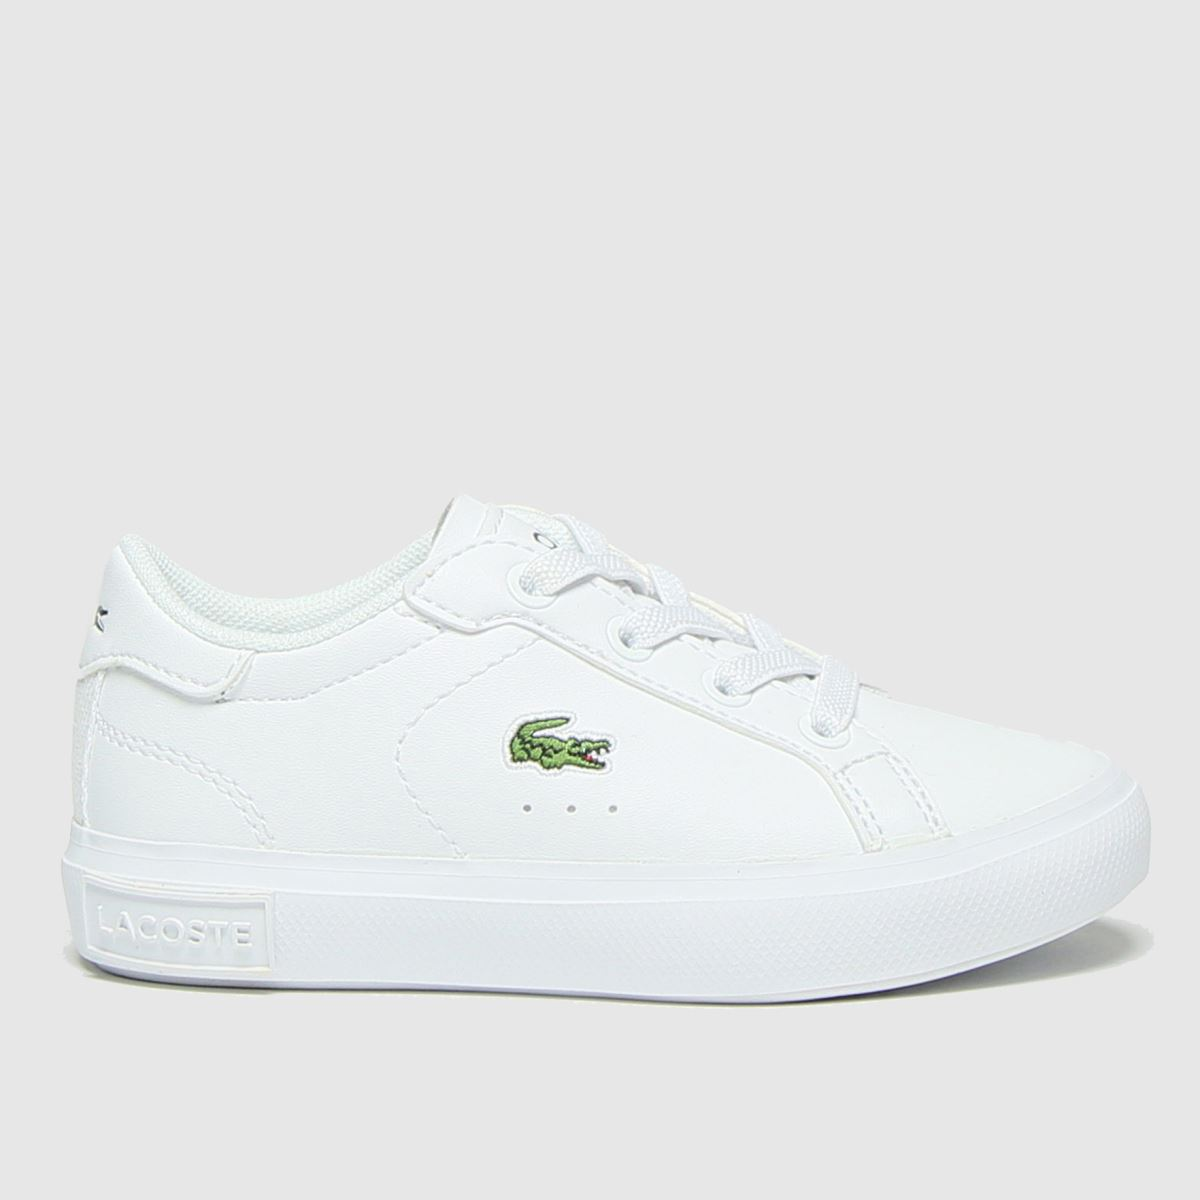 Lacoste White Powercourt Trainers Toddler